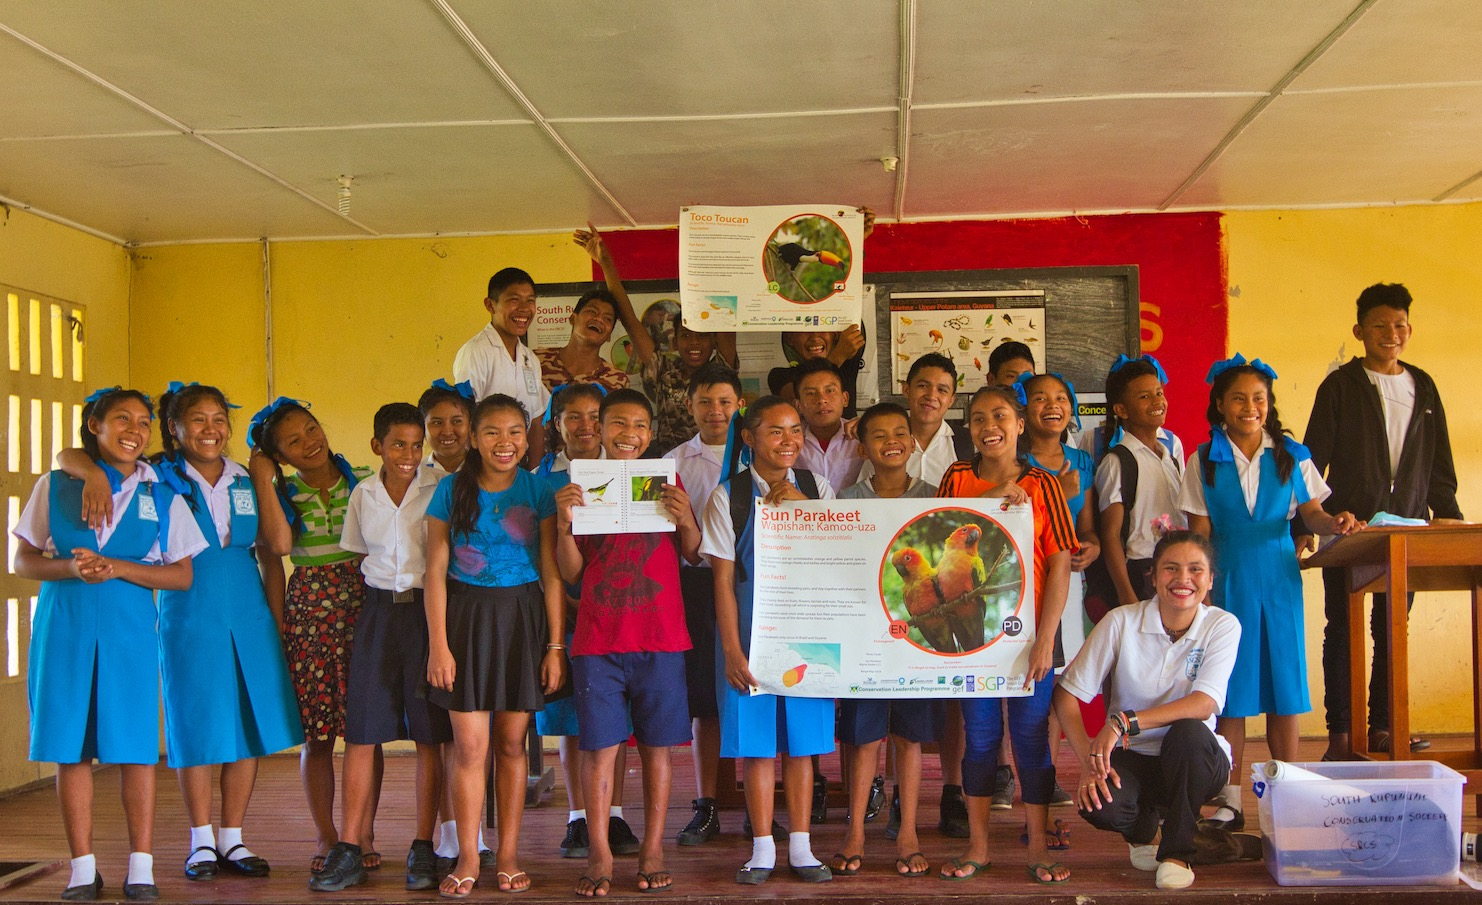 Life lessons: Teaching conservation and celebrating culture in Guyana